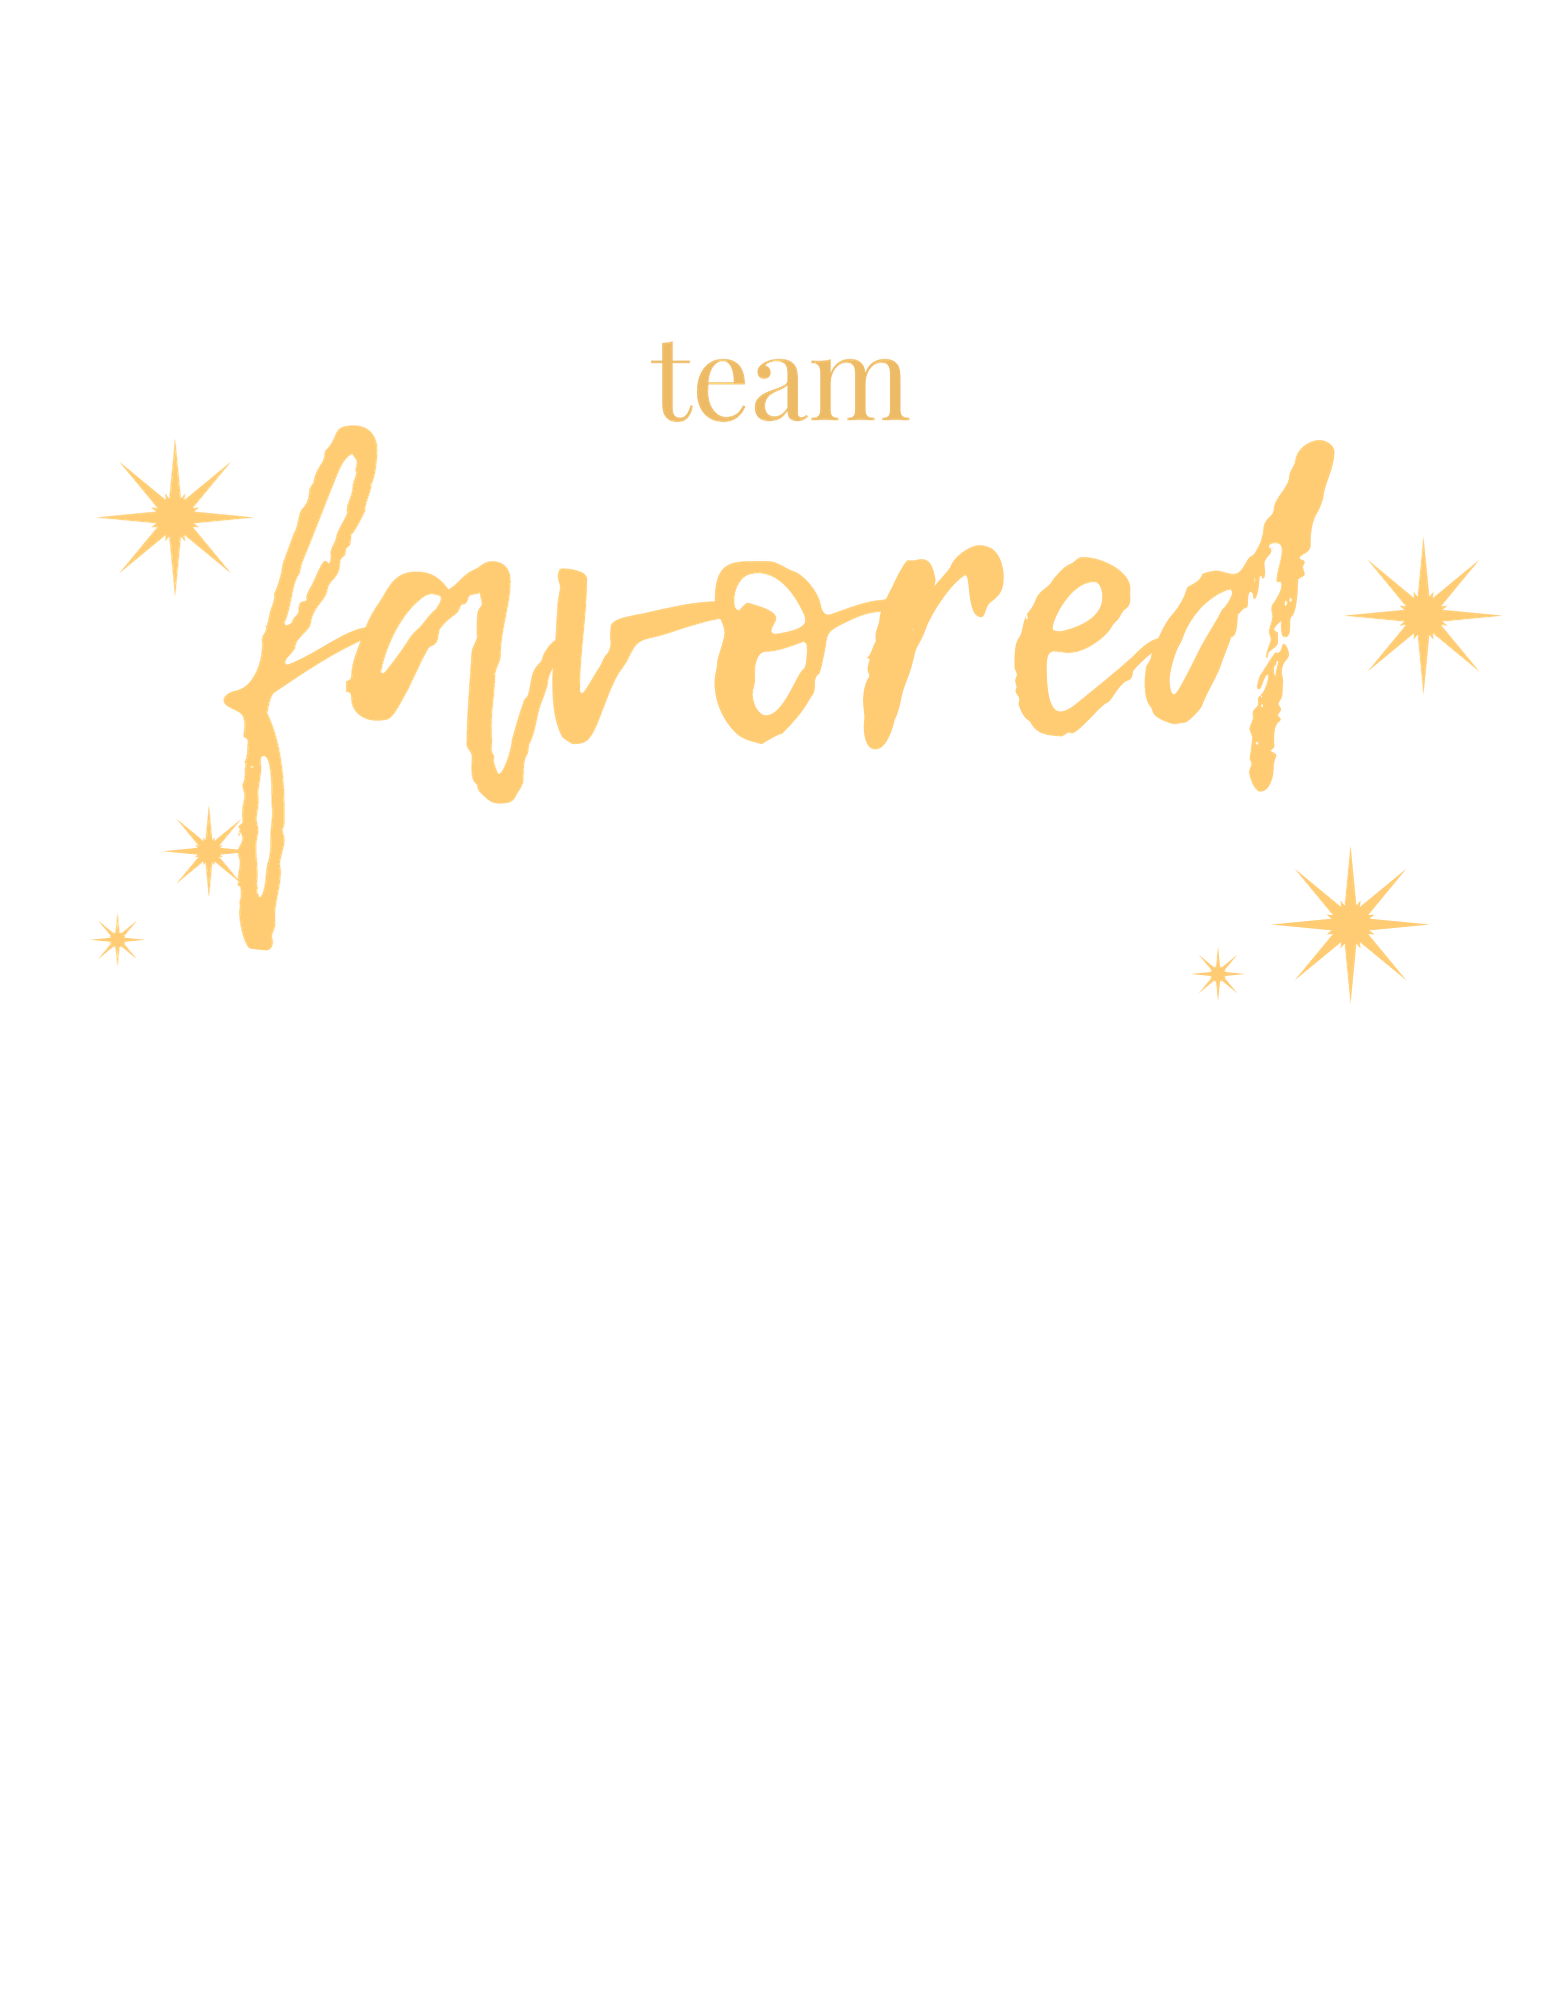 Team Favored (gold)